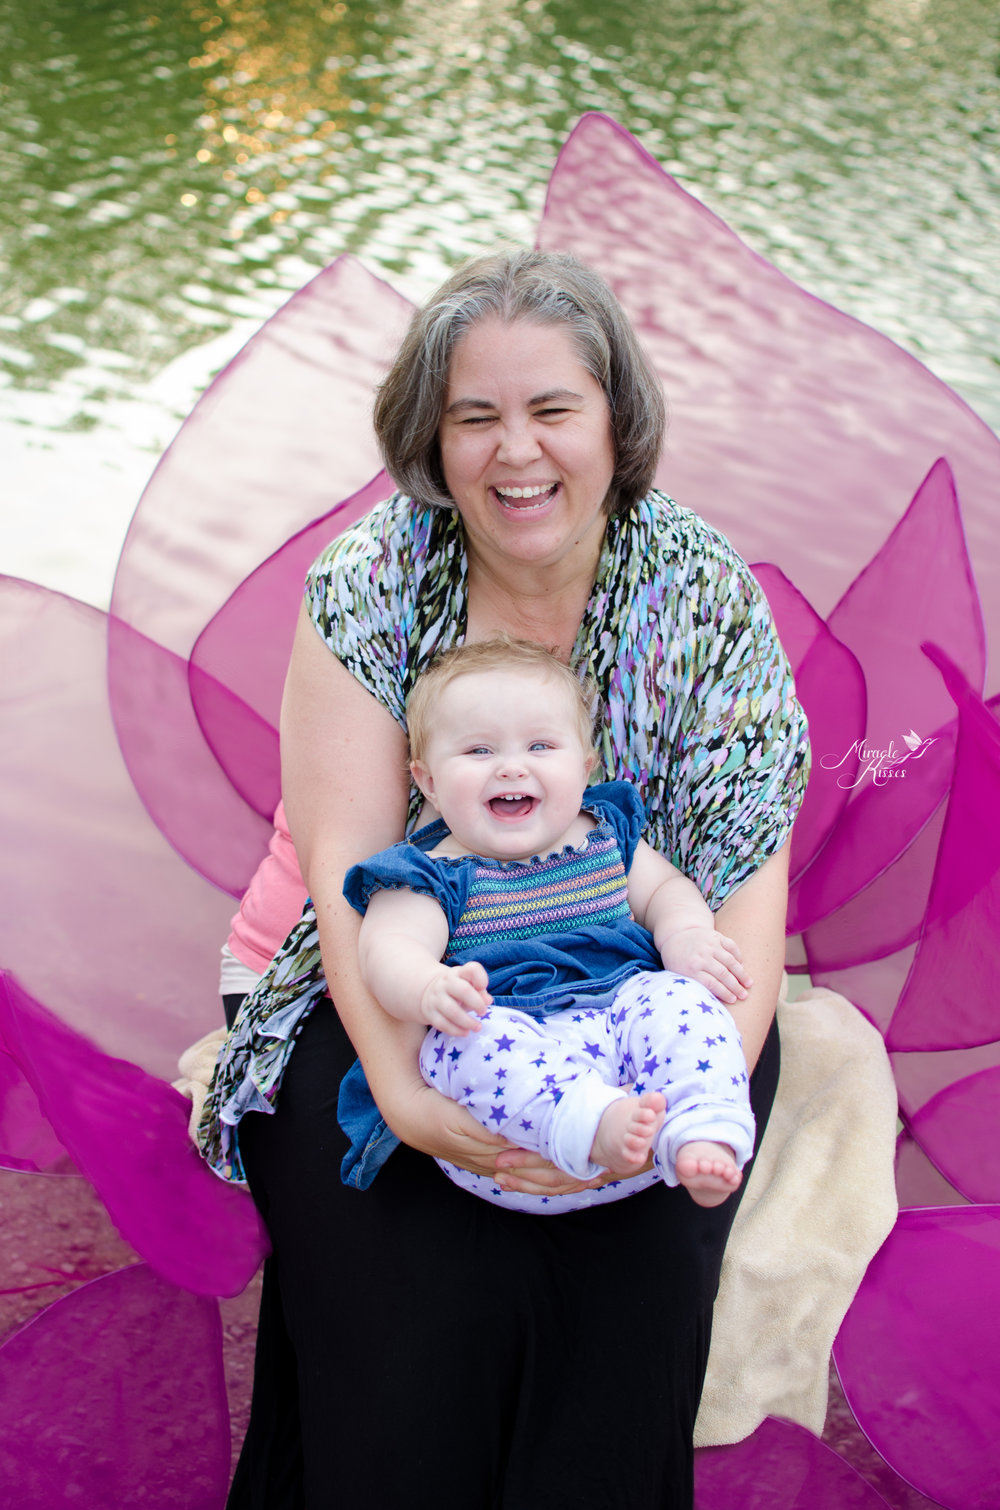 giggle laugh more, pure joy in motherhood, normalize breastfeeding